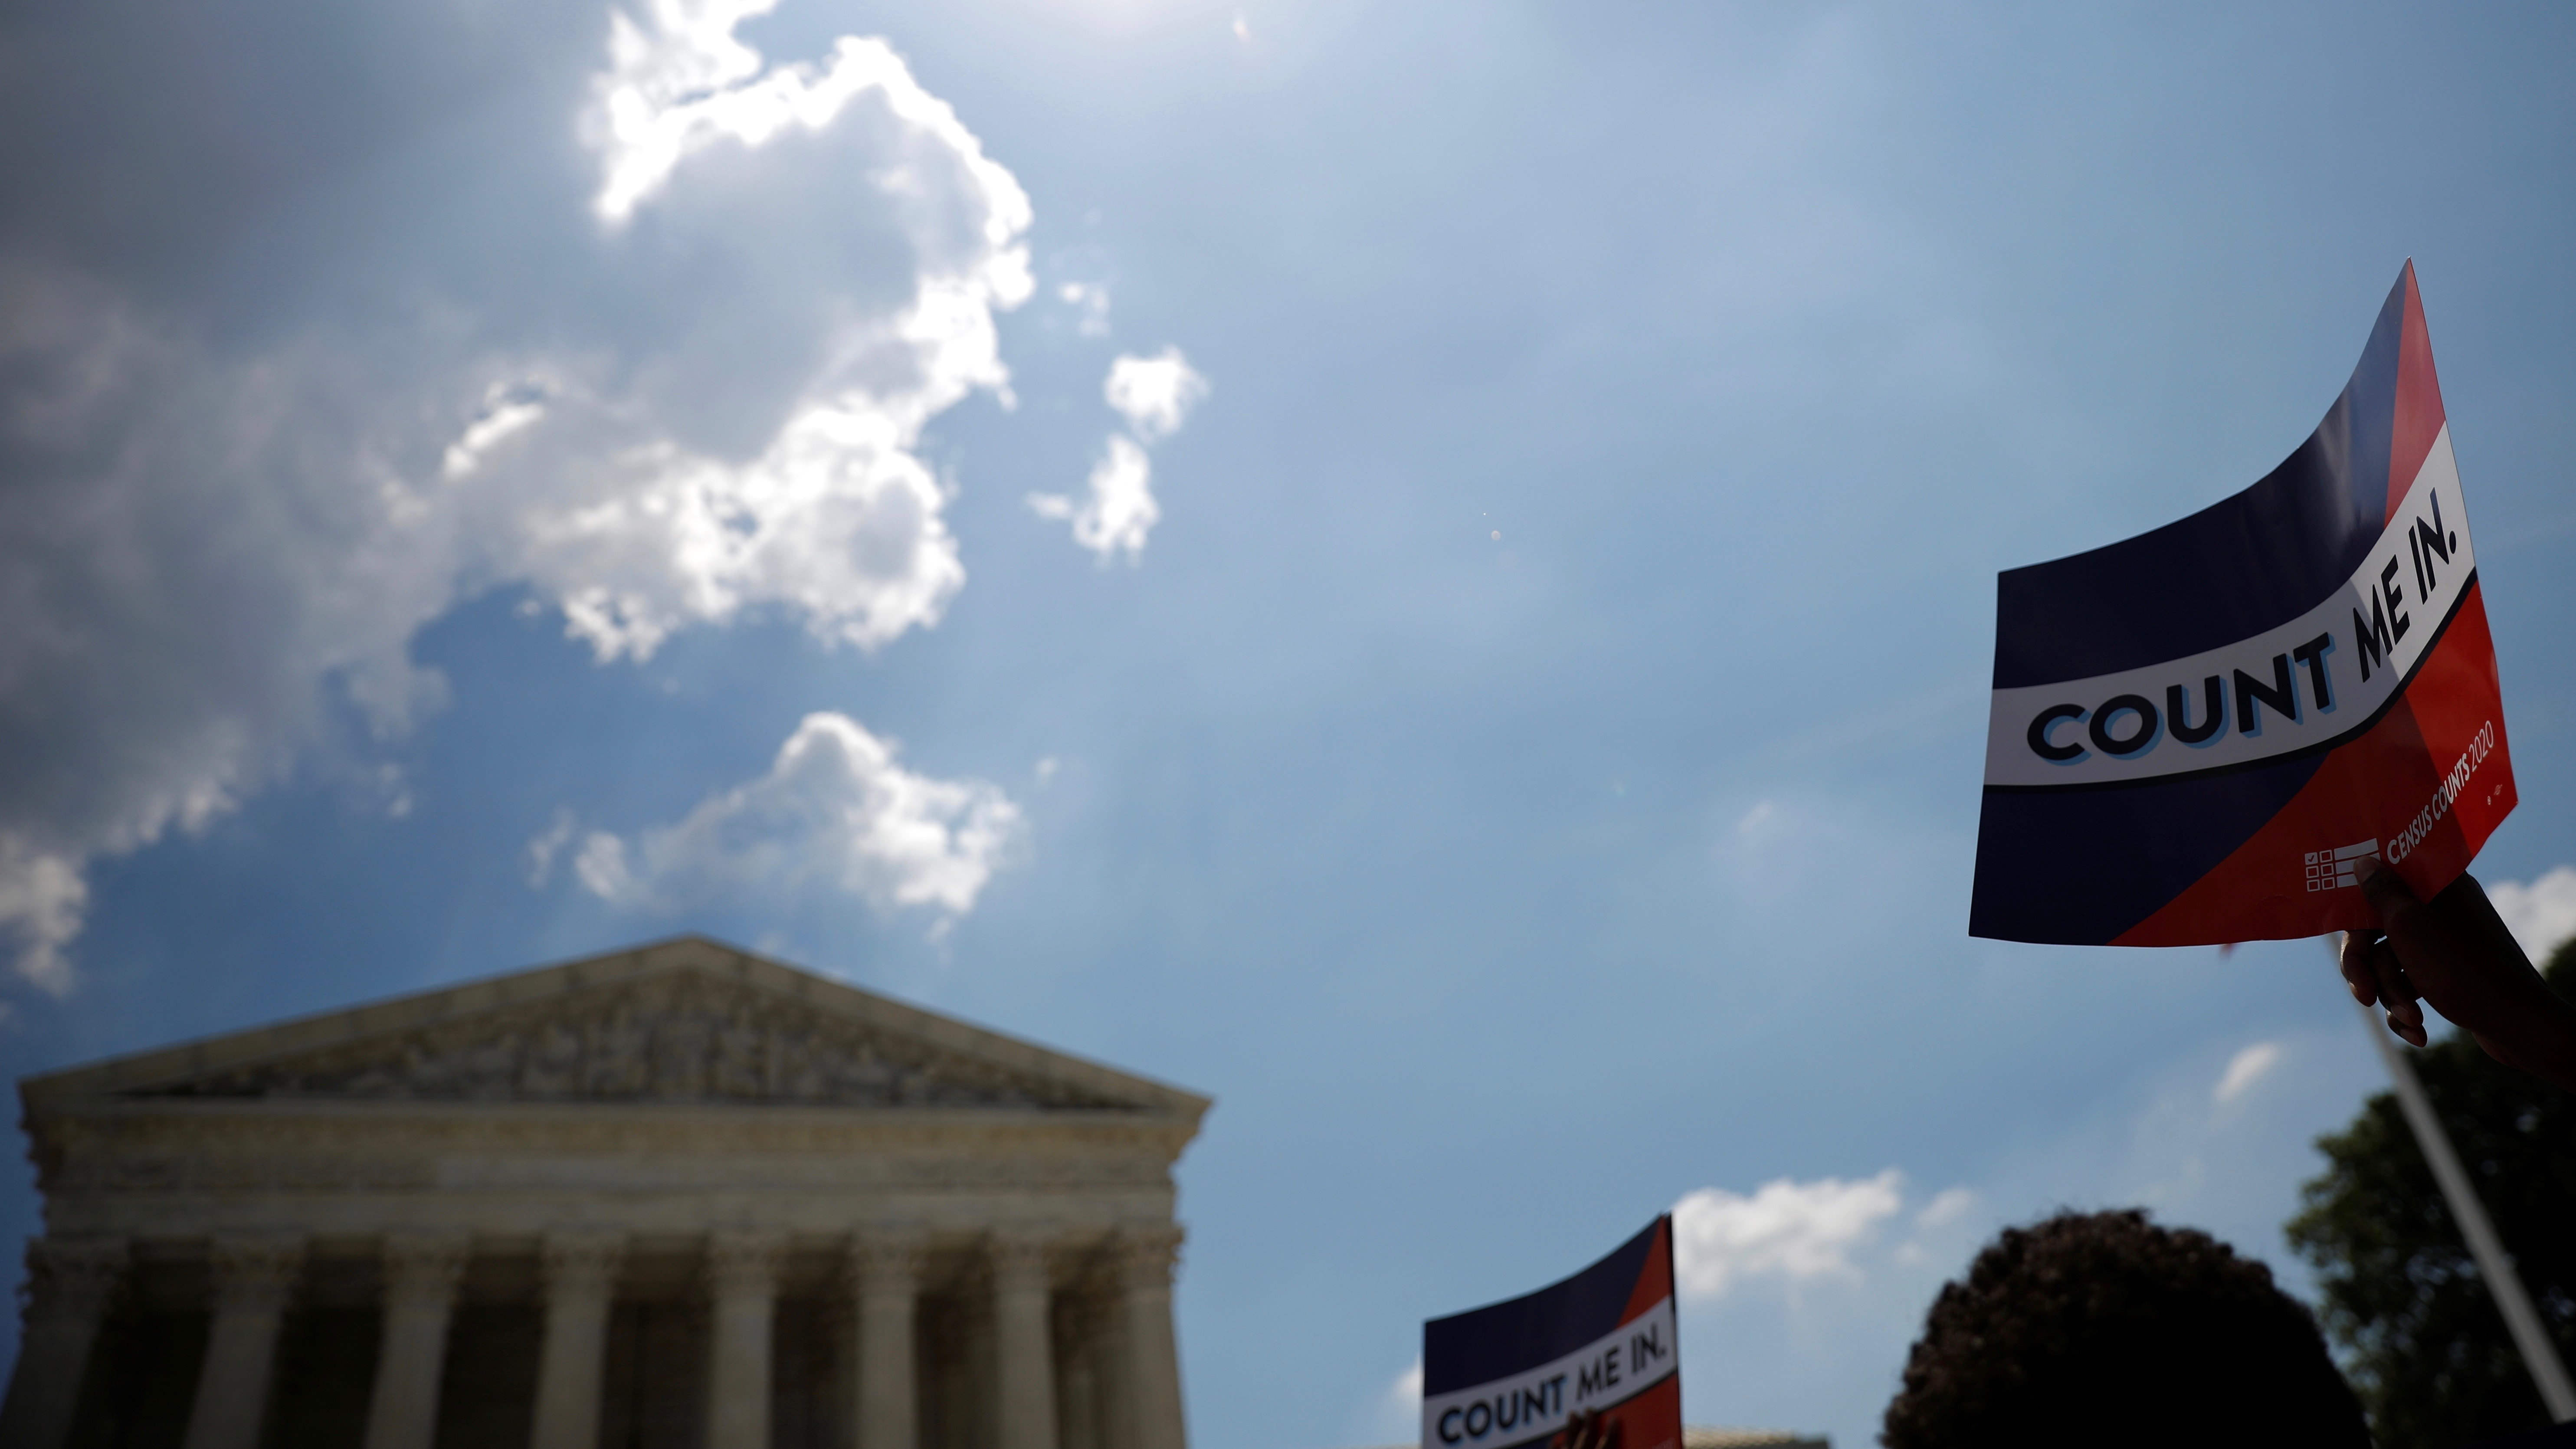 A protester holds sign outside the U.S. Supreme Court in Washington